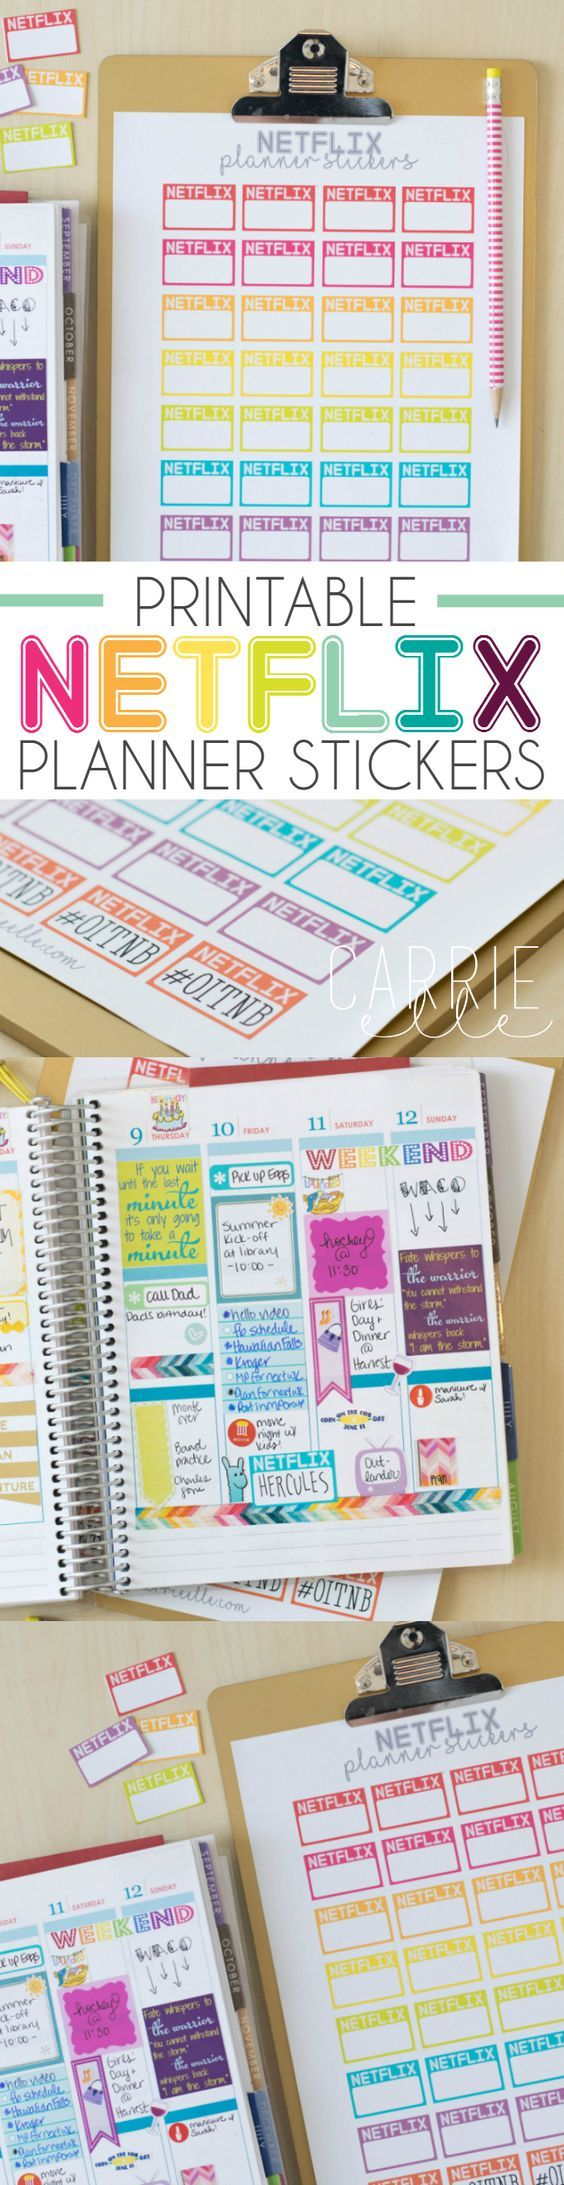 Free Printable Netflix Planner Stickers - these are so fun! #StreamTeam